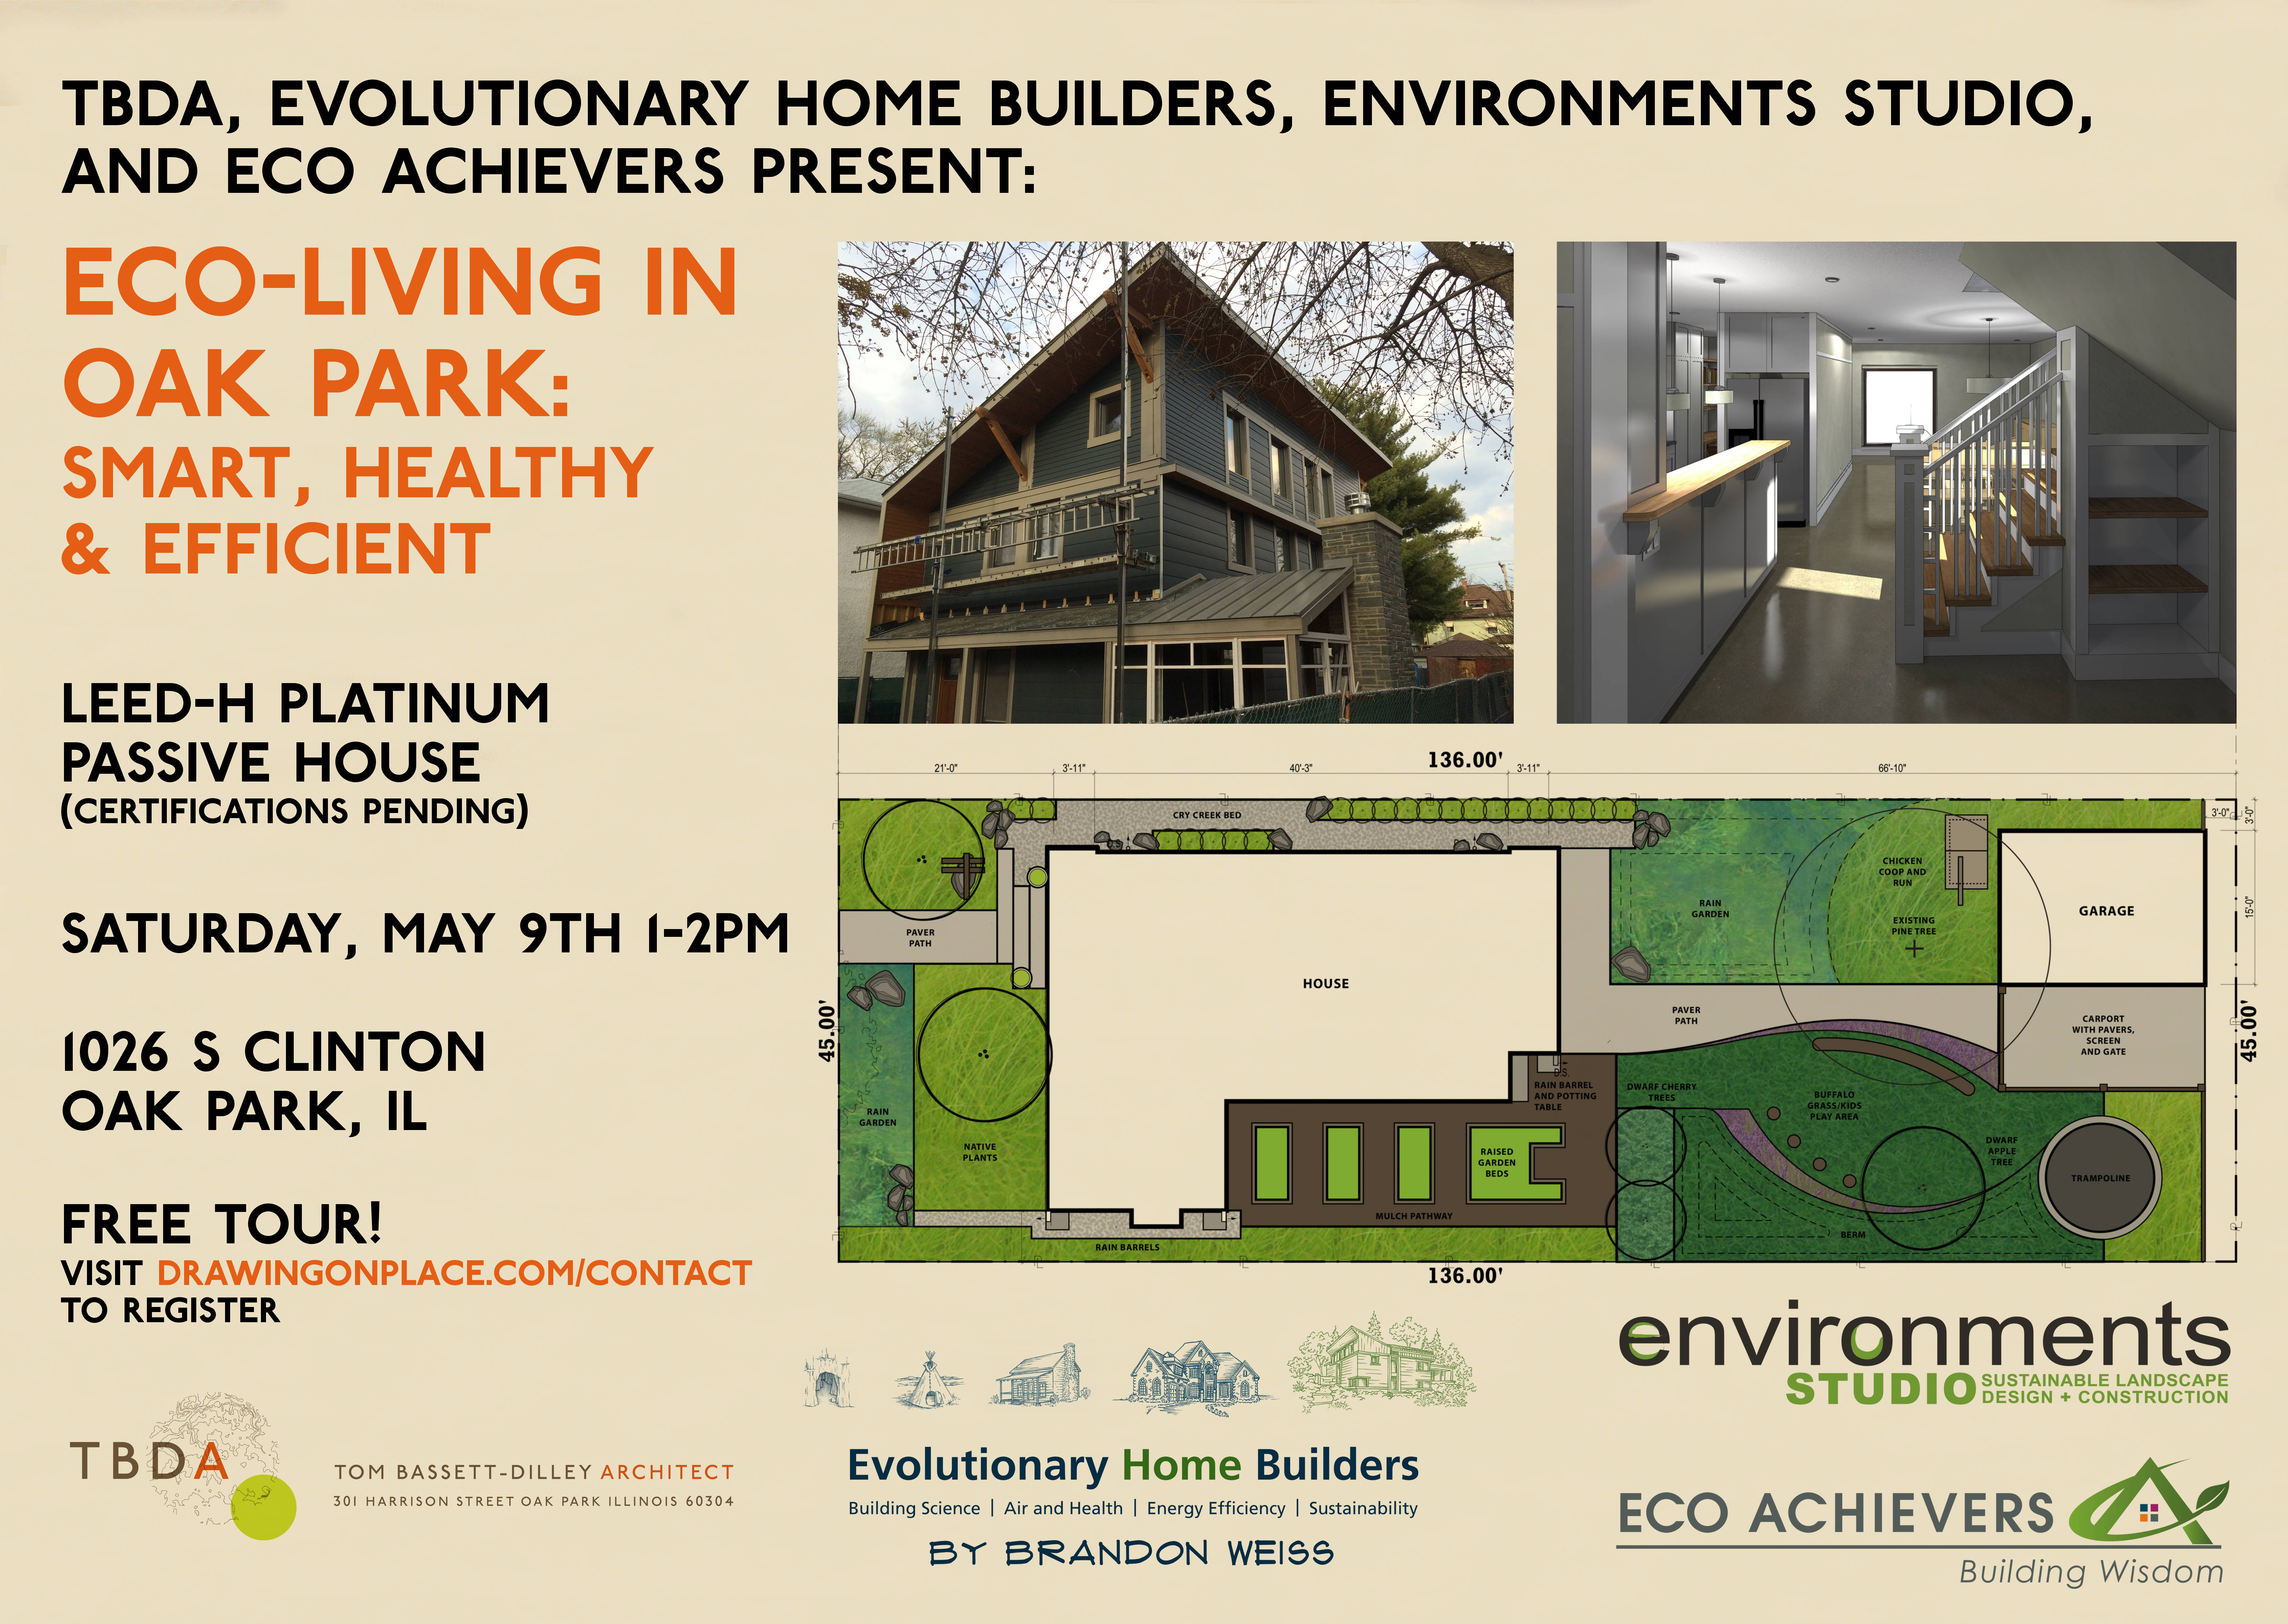 Tour eco friendly home designed in archicad by us green for Building an efficient home